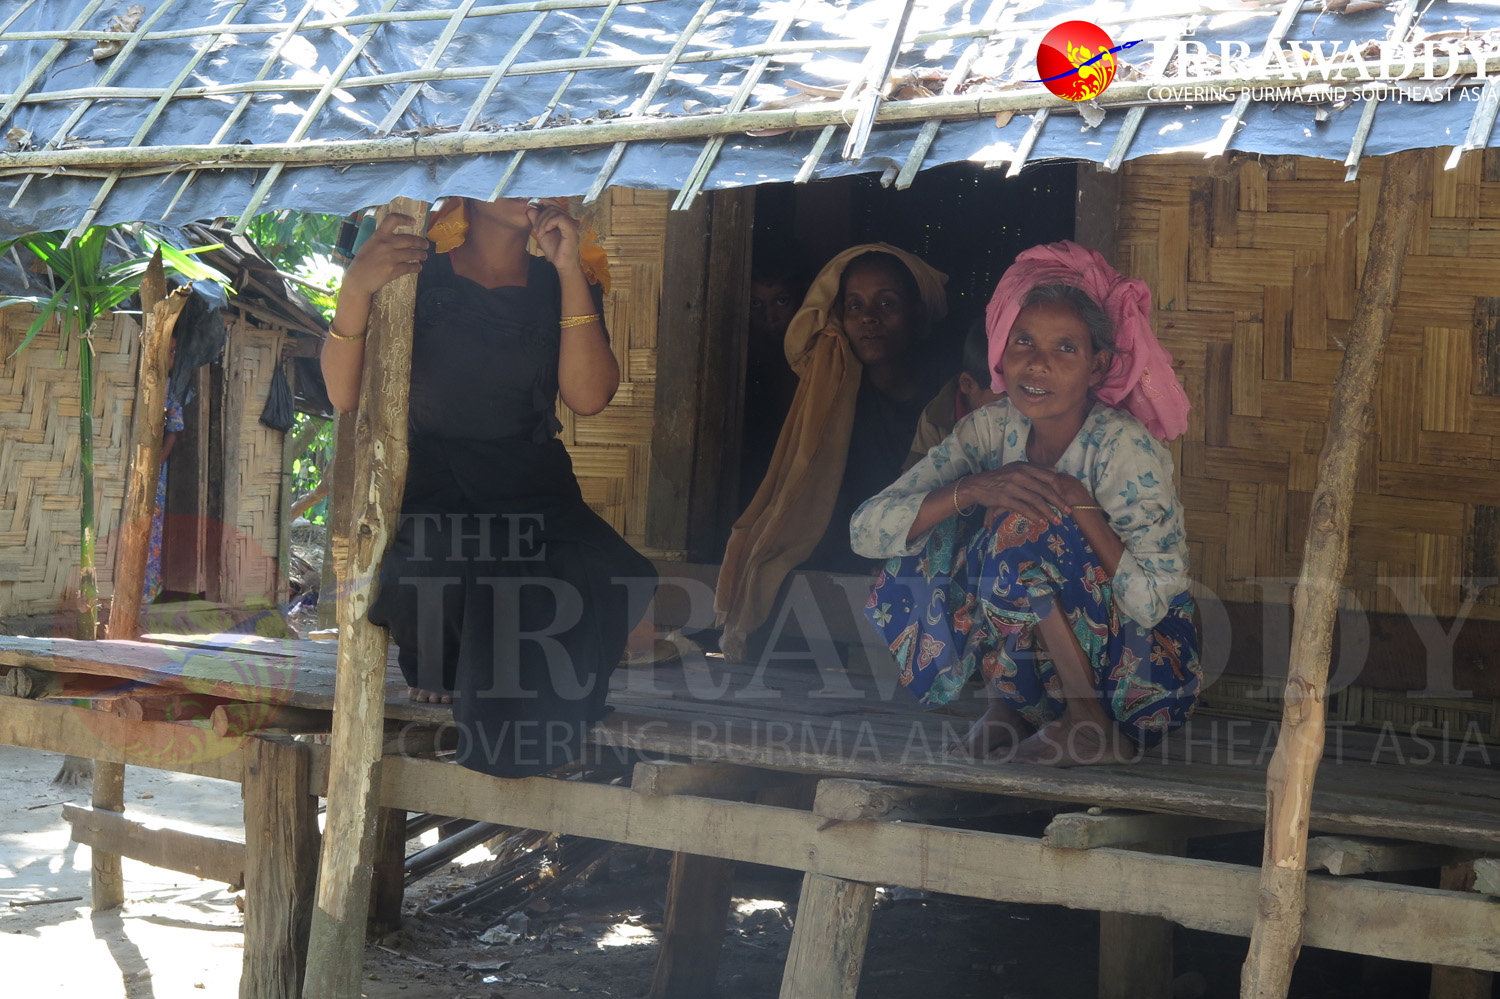 Muslim women in Maung Hna Ma village in Maungdaw. (Photo: Moe Myint / The Irrawaddy)